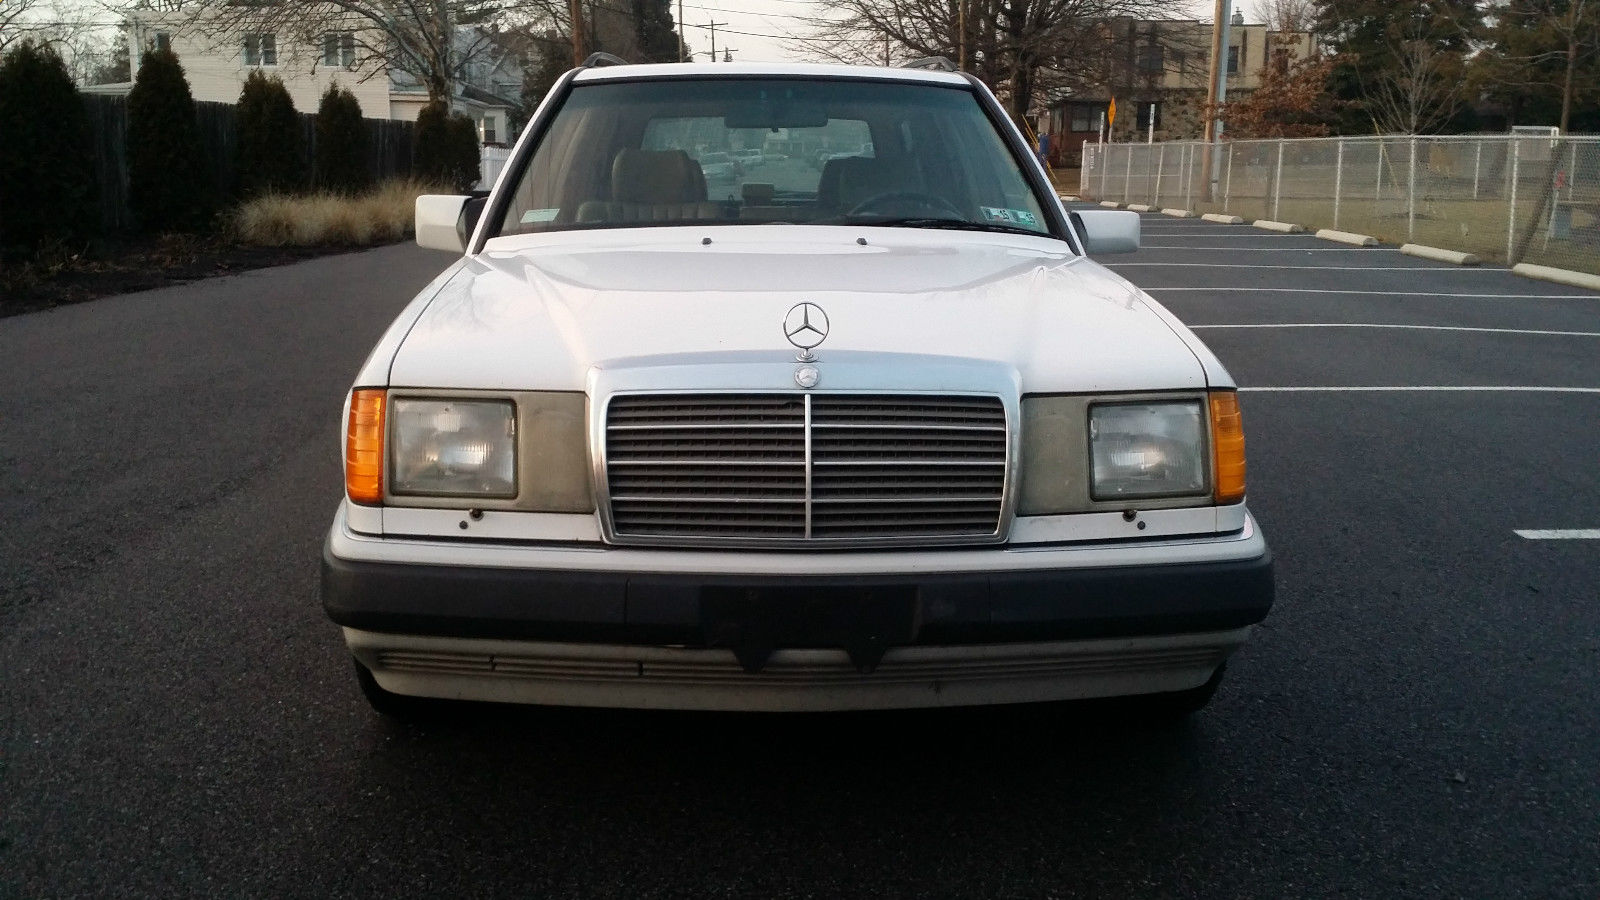 1992 mercedes benz 300te wagon with low miles and so clean for Mercedes benz mileage